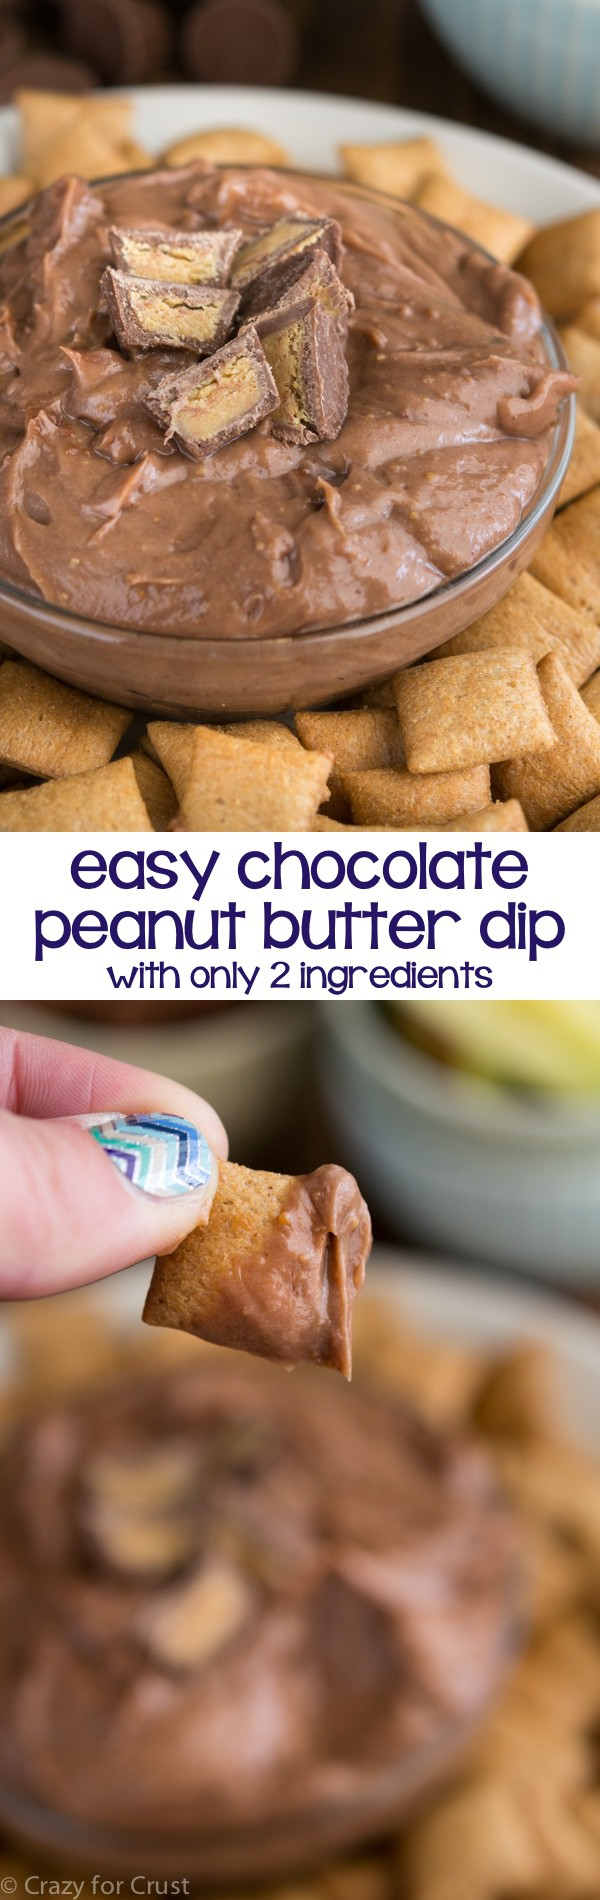 Easy Chocolate Peanut Butter Dip